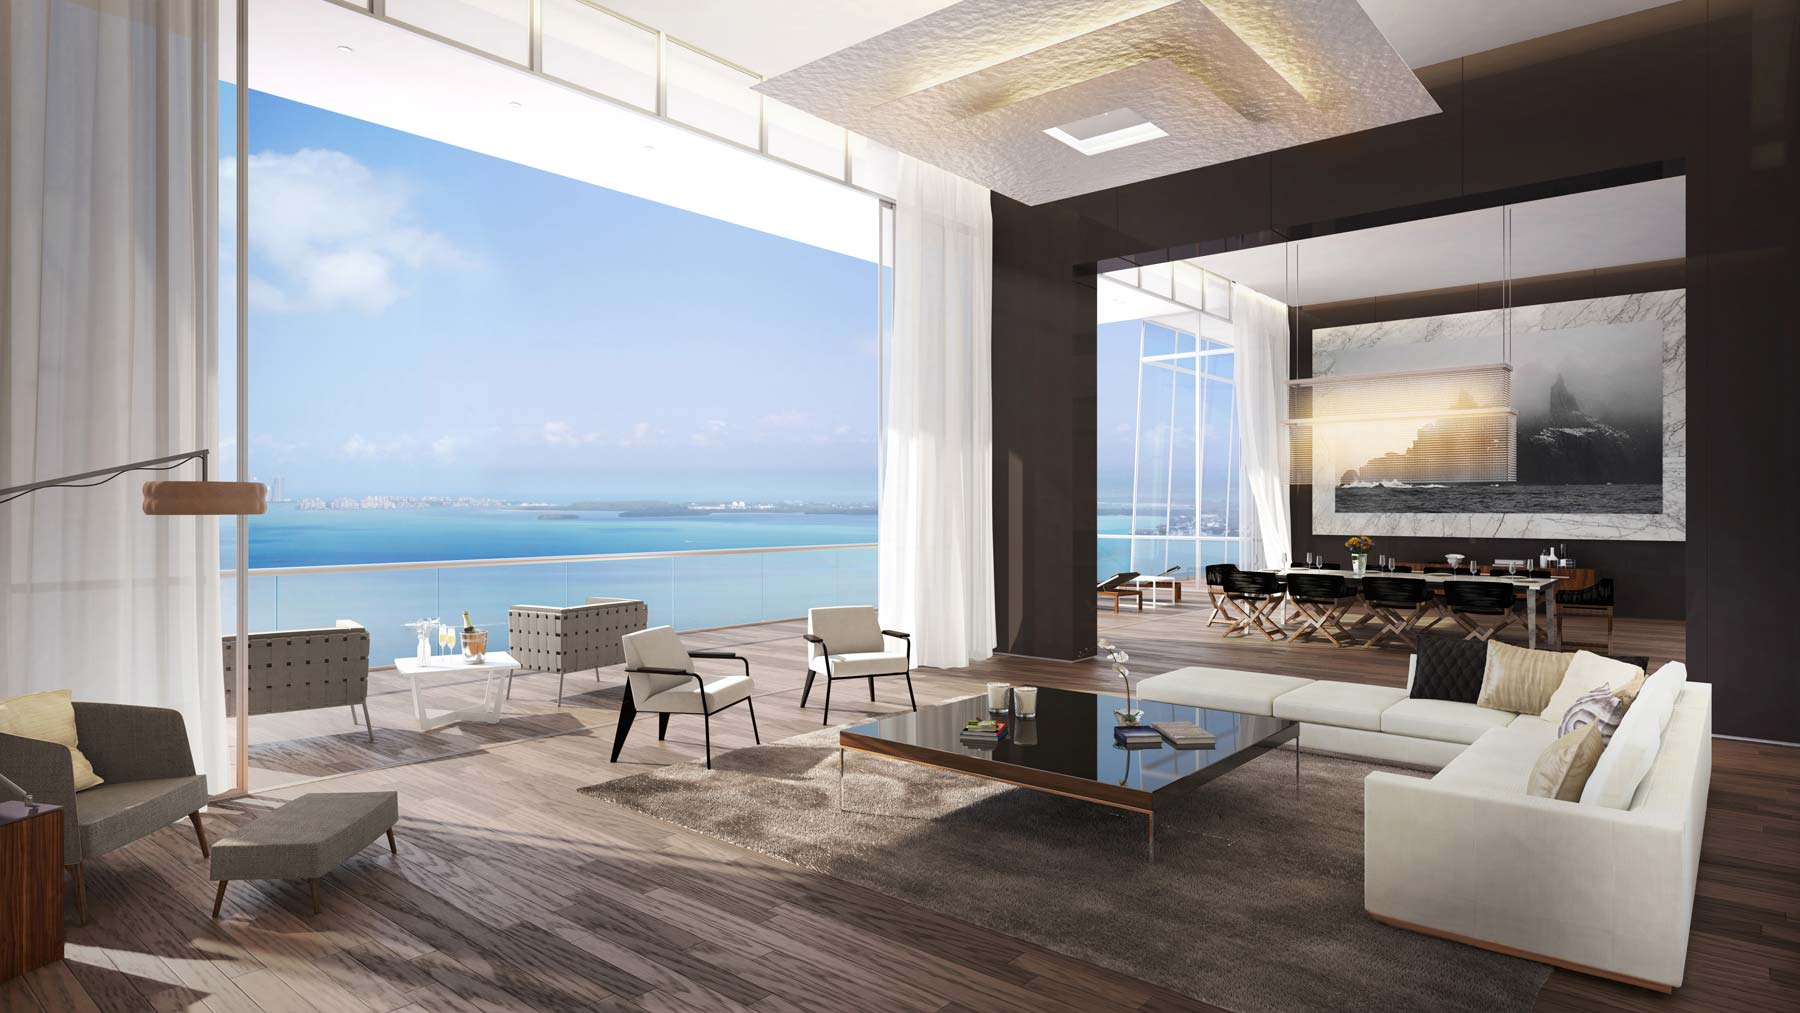 Reception room opening out to large terrace Miami Florida